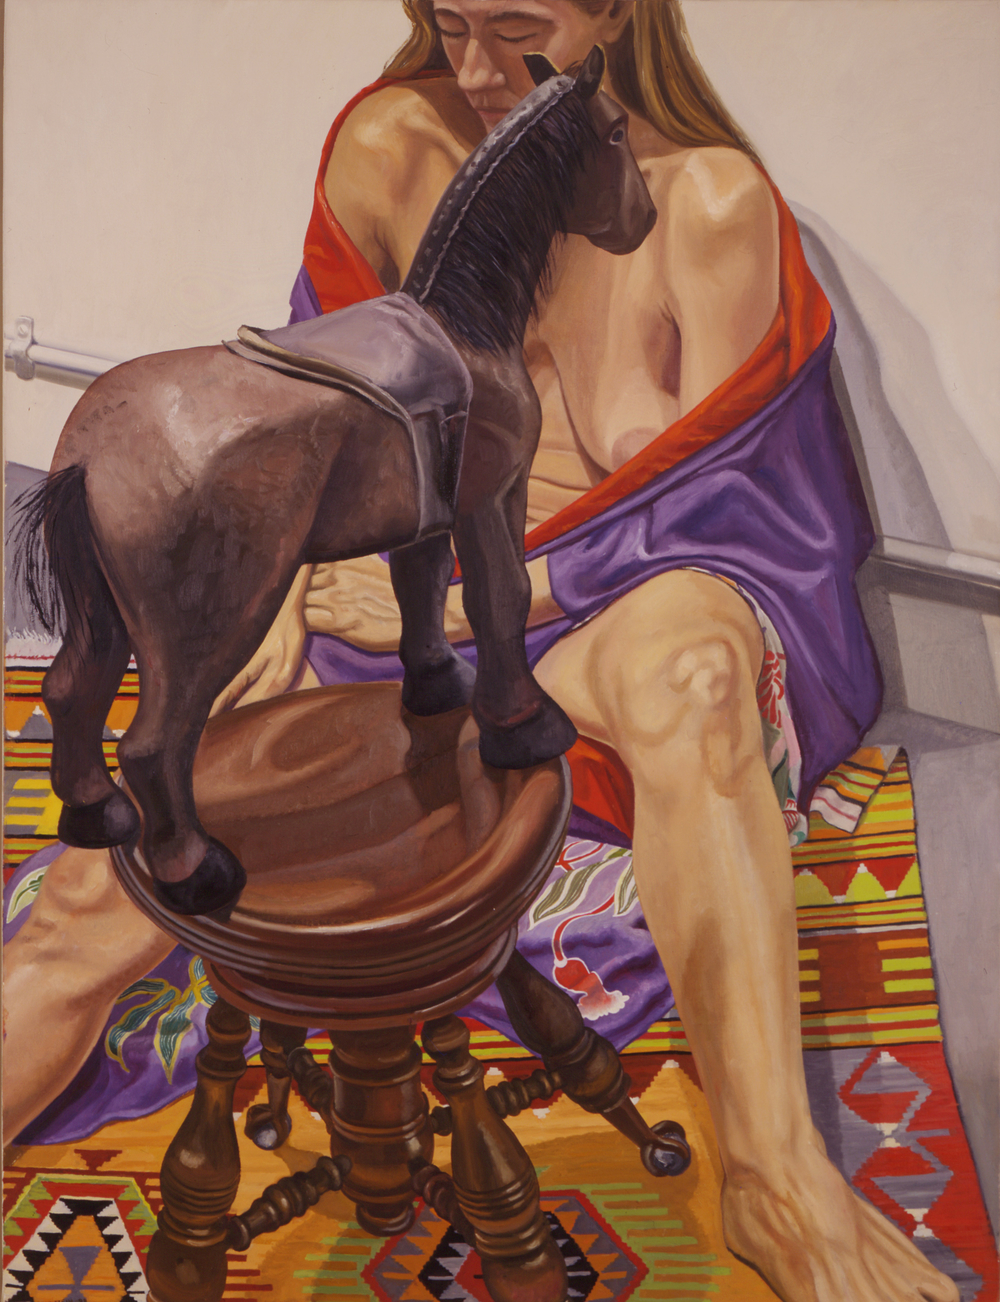 1998, Nude in Kimono with Folk Art Horse on Piano Stool, Oil, 48x36, 1998.jpg